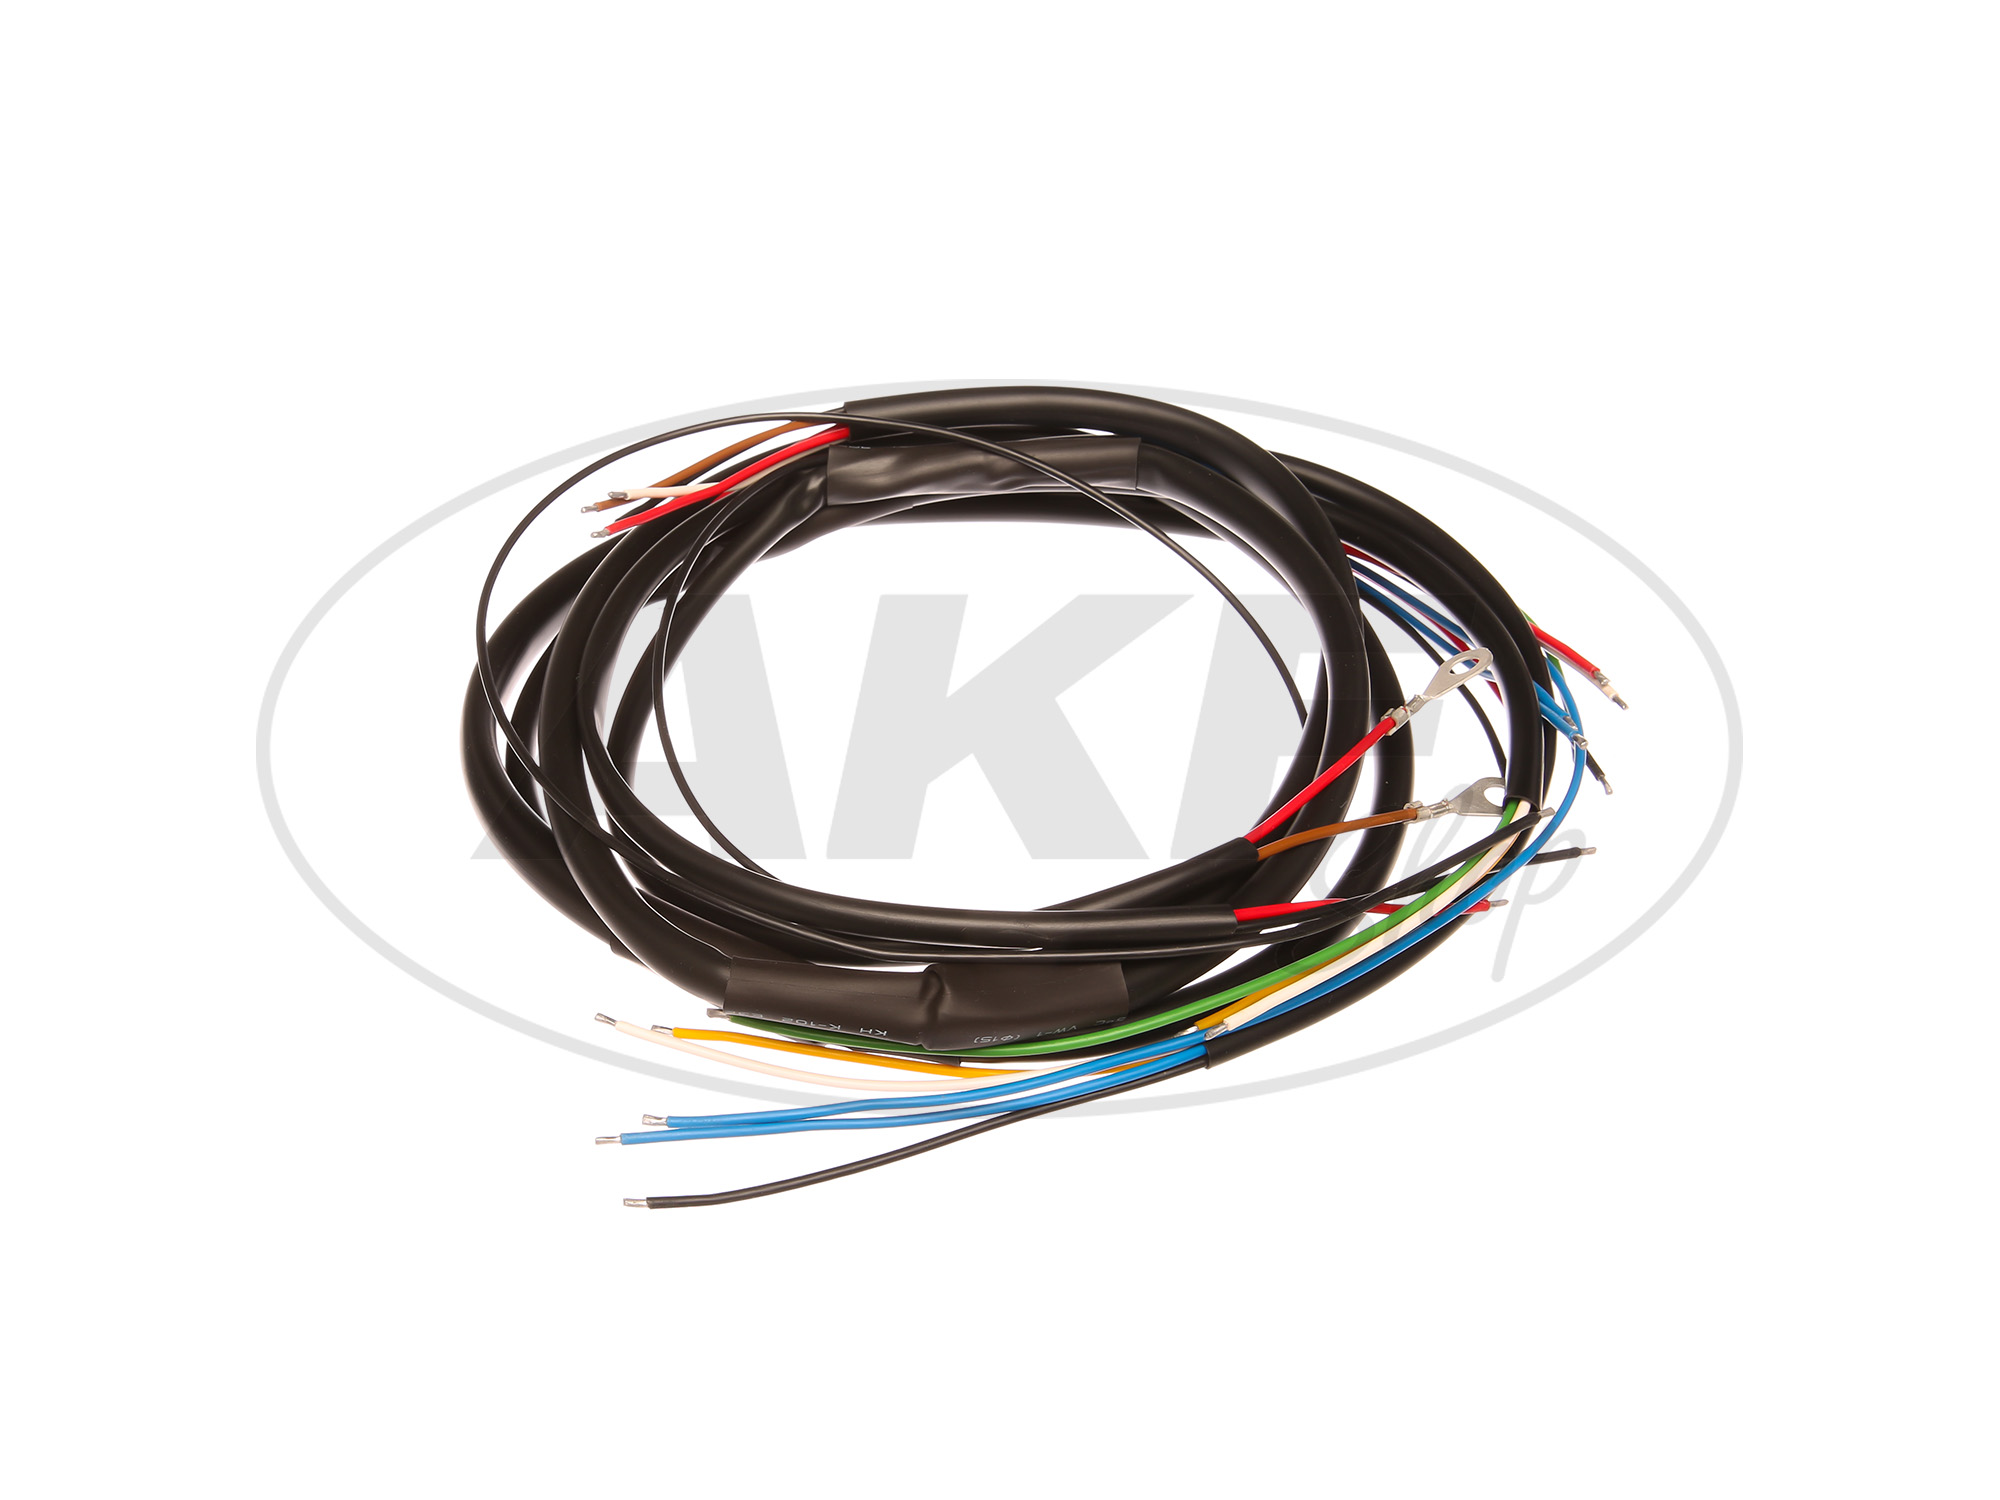 wiring harness for nz 250  350  500  dkw   with wiring diagram wiring harness zongshen 150cc atv wiring harness netting